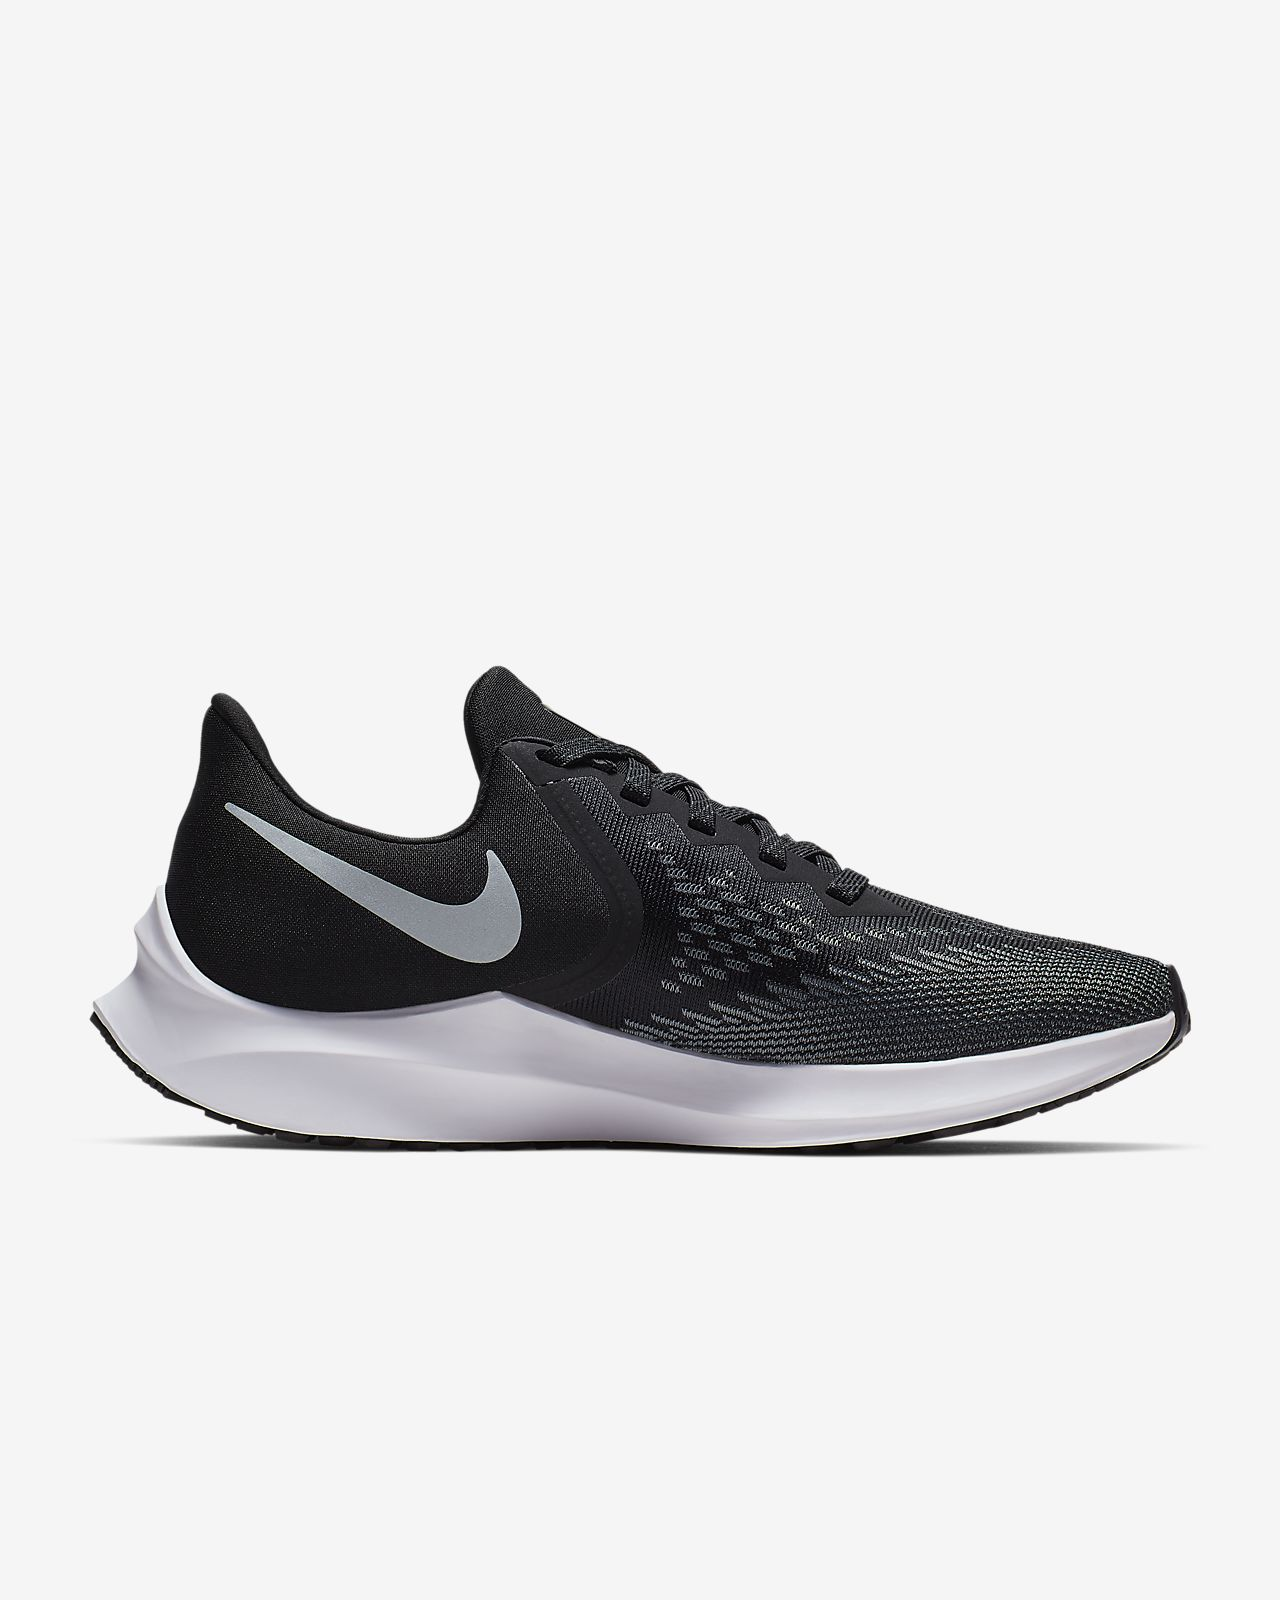 Nike Air Zoom Winflo 6 Review: Stylish Sneakers with Super